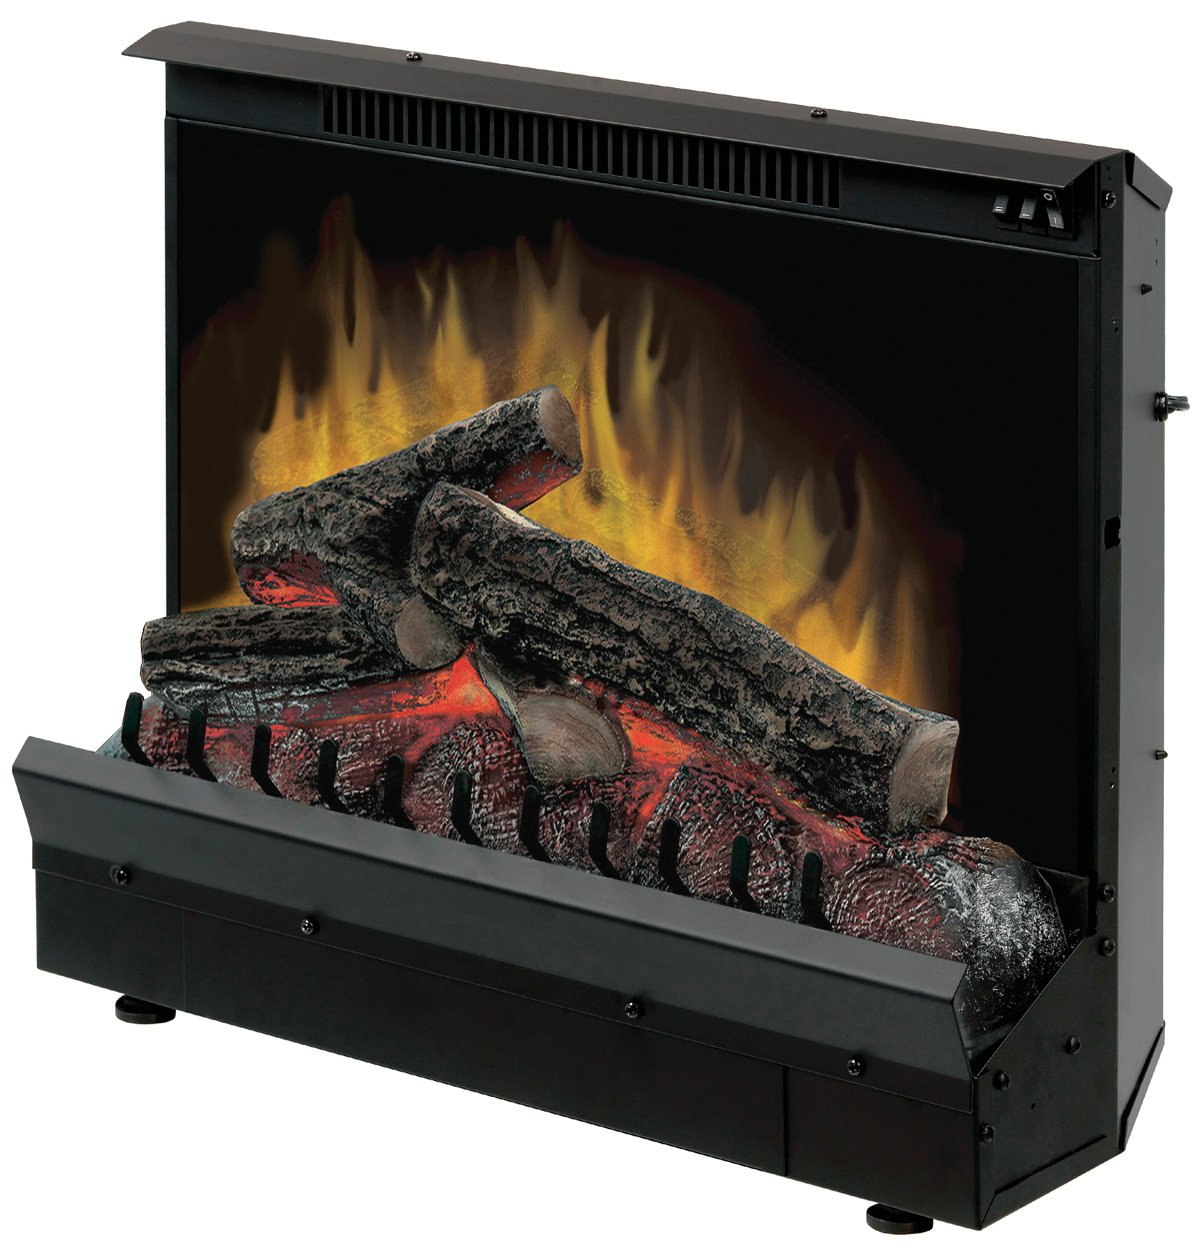 Faux Fireplace Insert Amazoncom Dimplex Dfi2309 Electric Fireplace Insert Home Kitchen